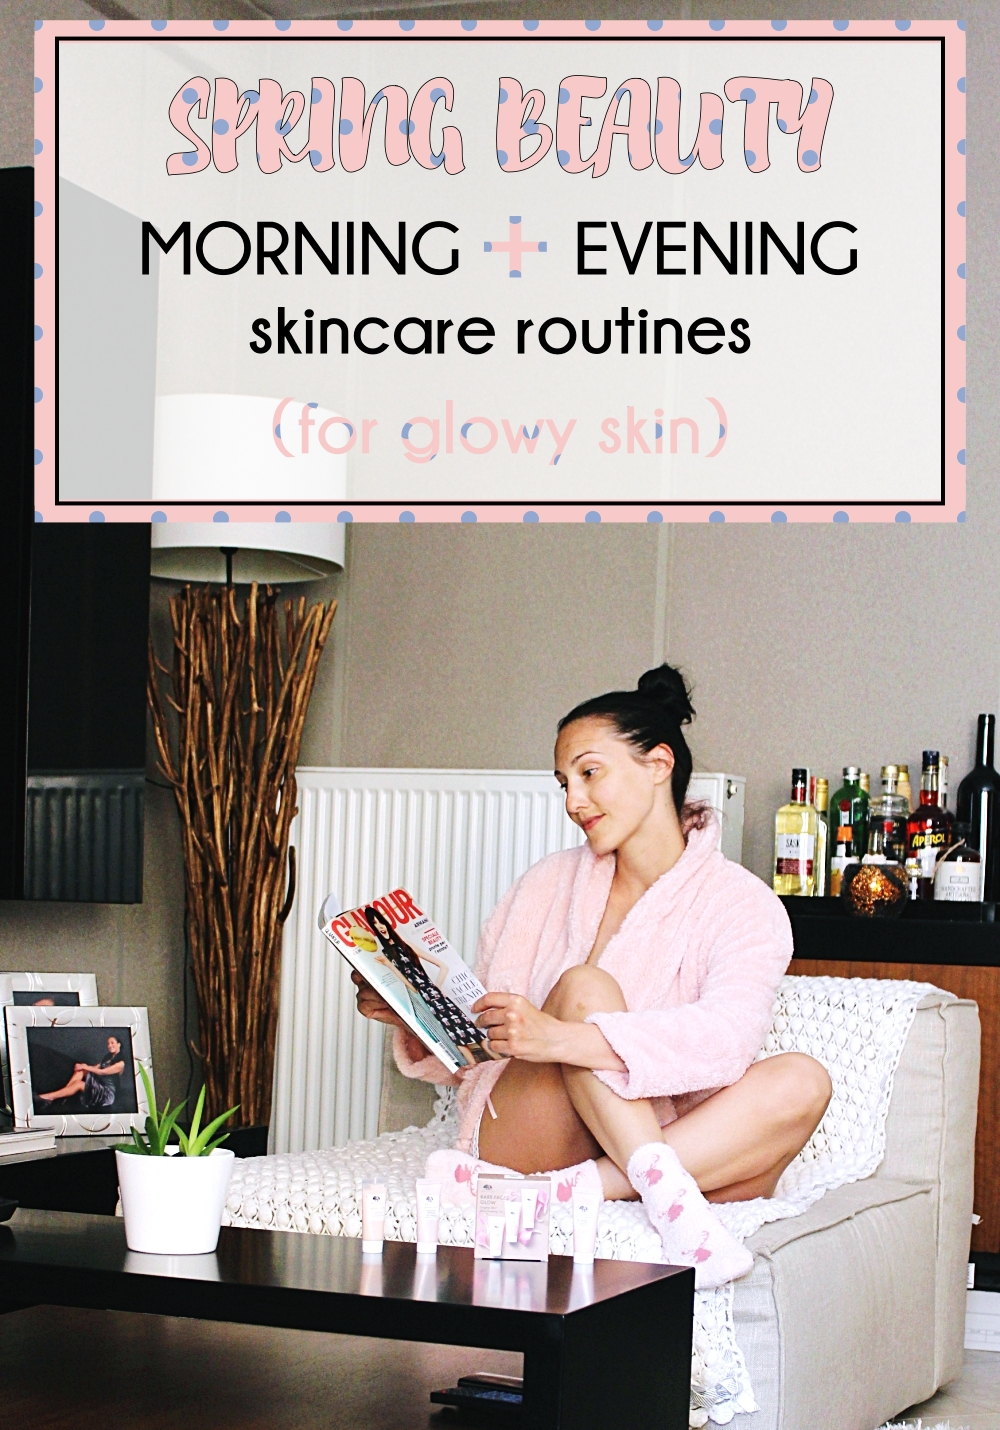 spring beauty morning and evening skincare routine for glowy skin; prolecna rutina nege koze